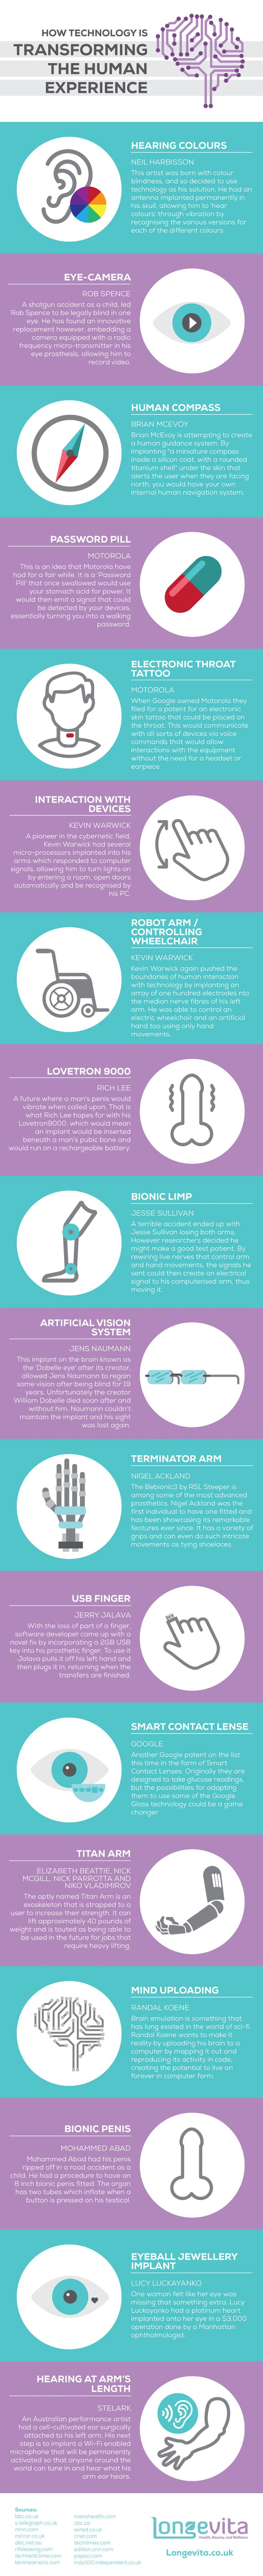 How Technology is Transforming the Human Experience #Infographic #Technology